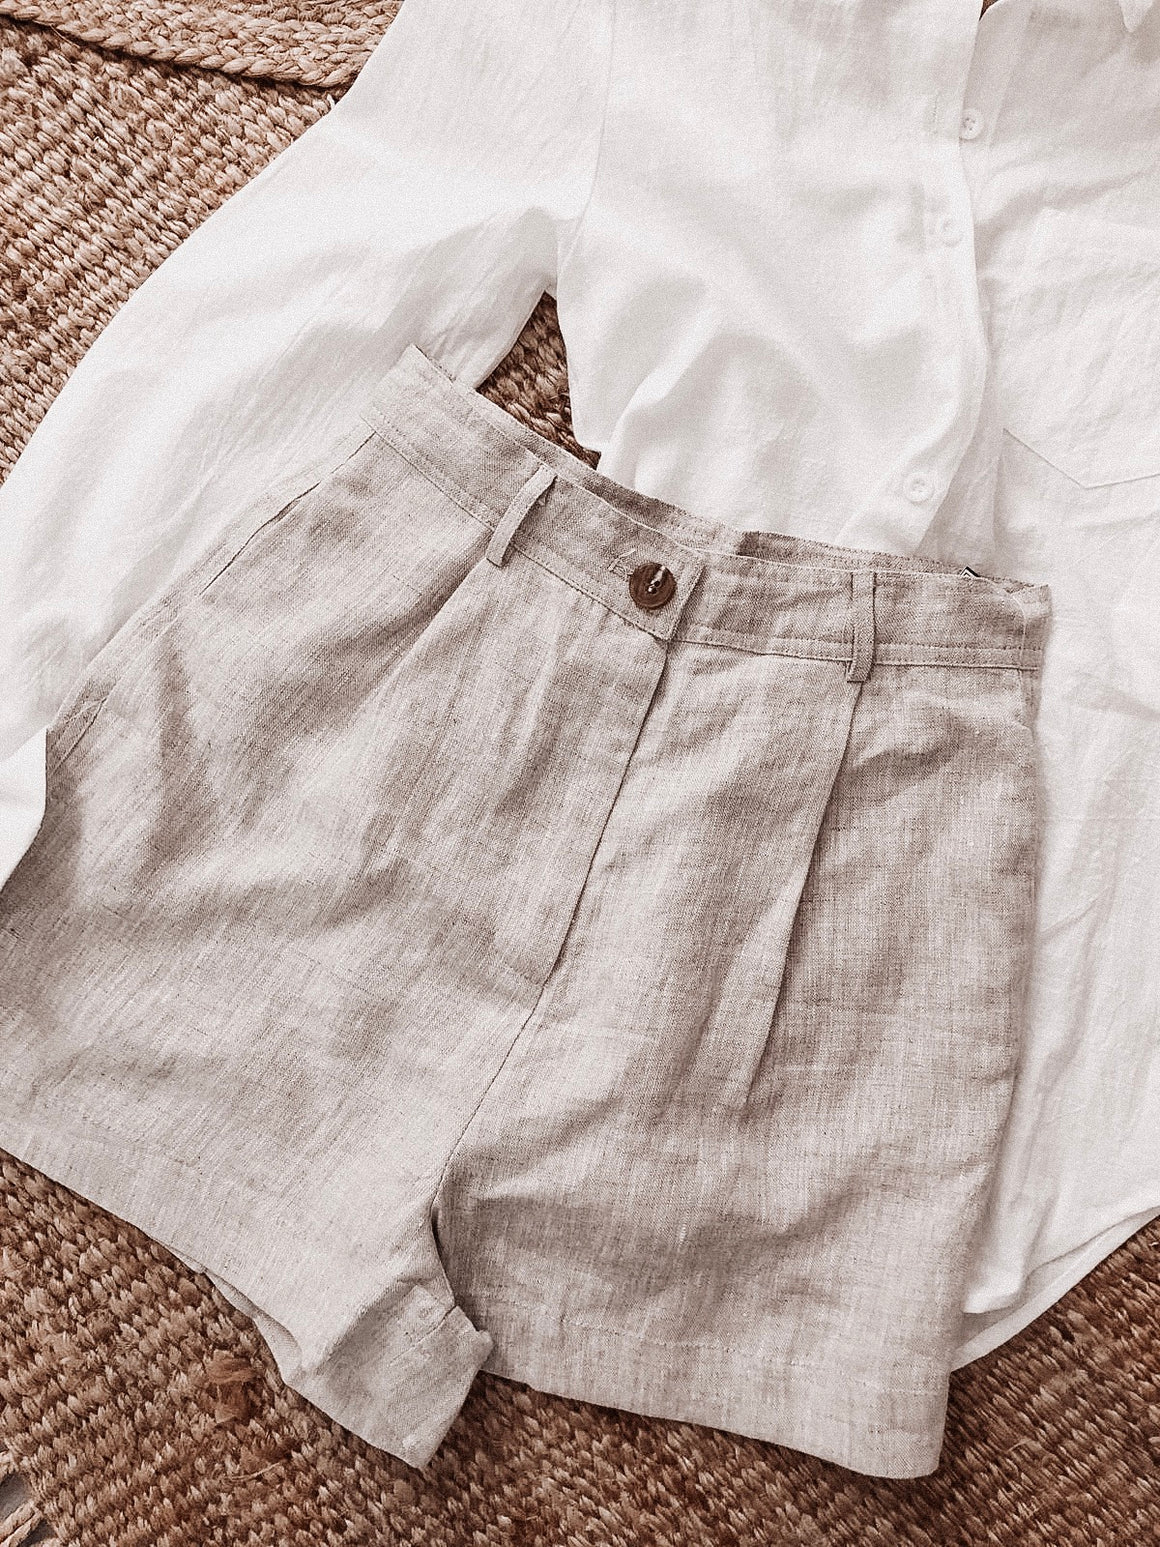 Amari linen high waisted shorts